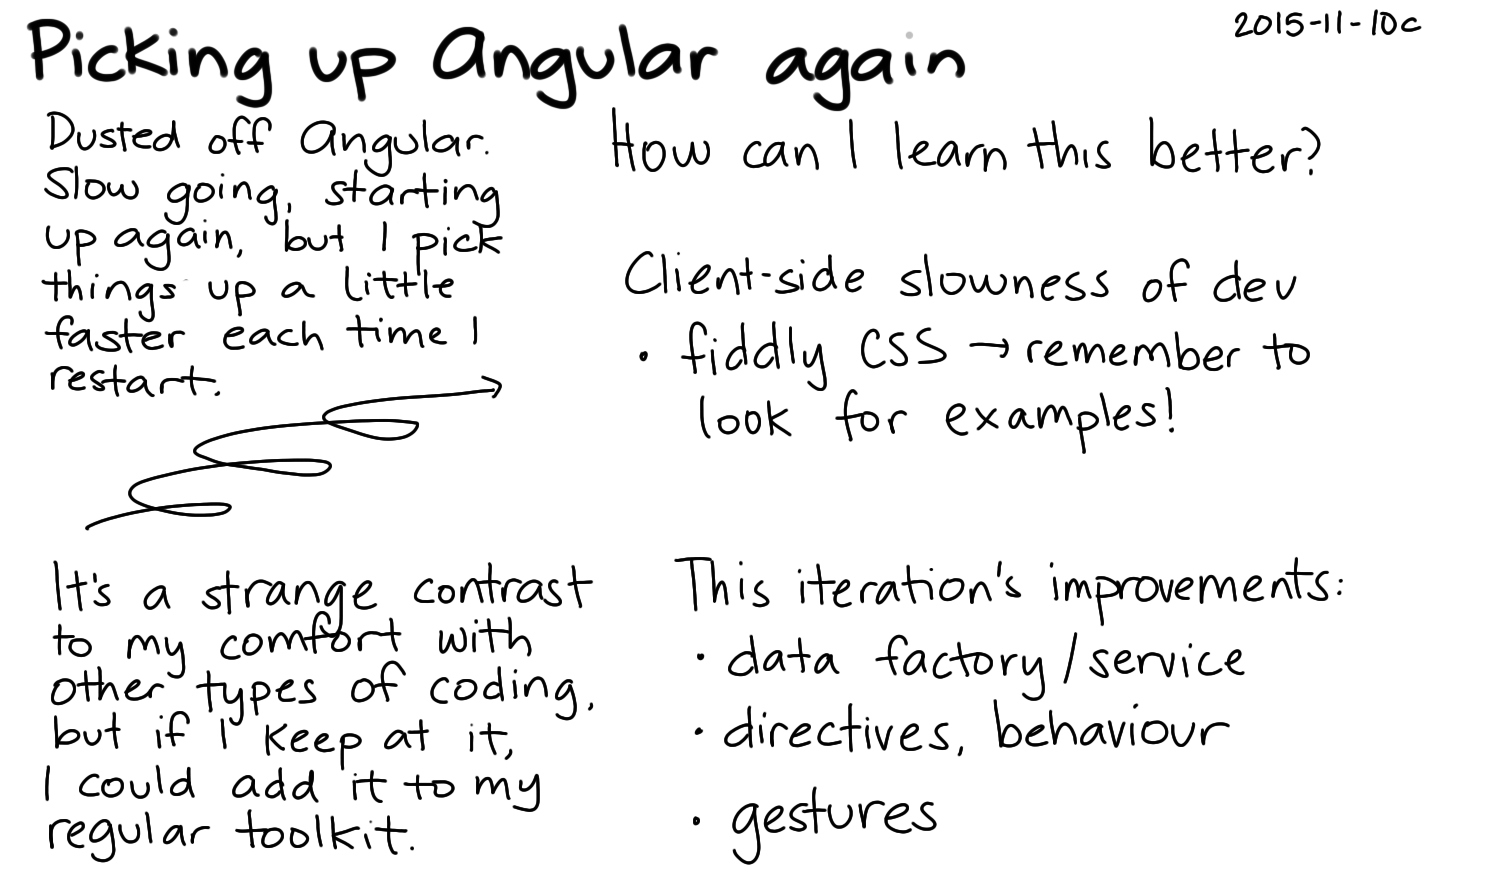 2015-11-10c Picking up Angular again -- index card #programming #angular #my-learning.png